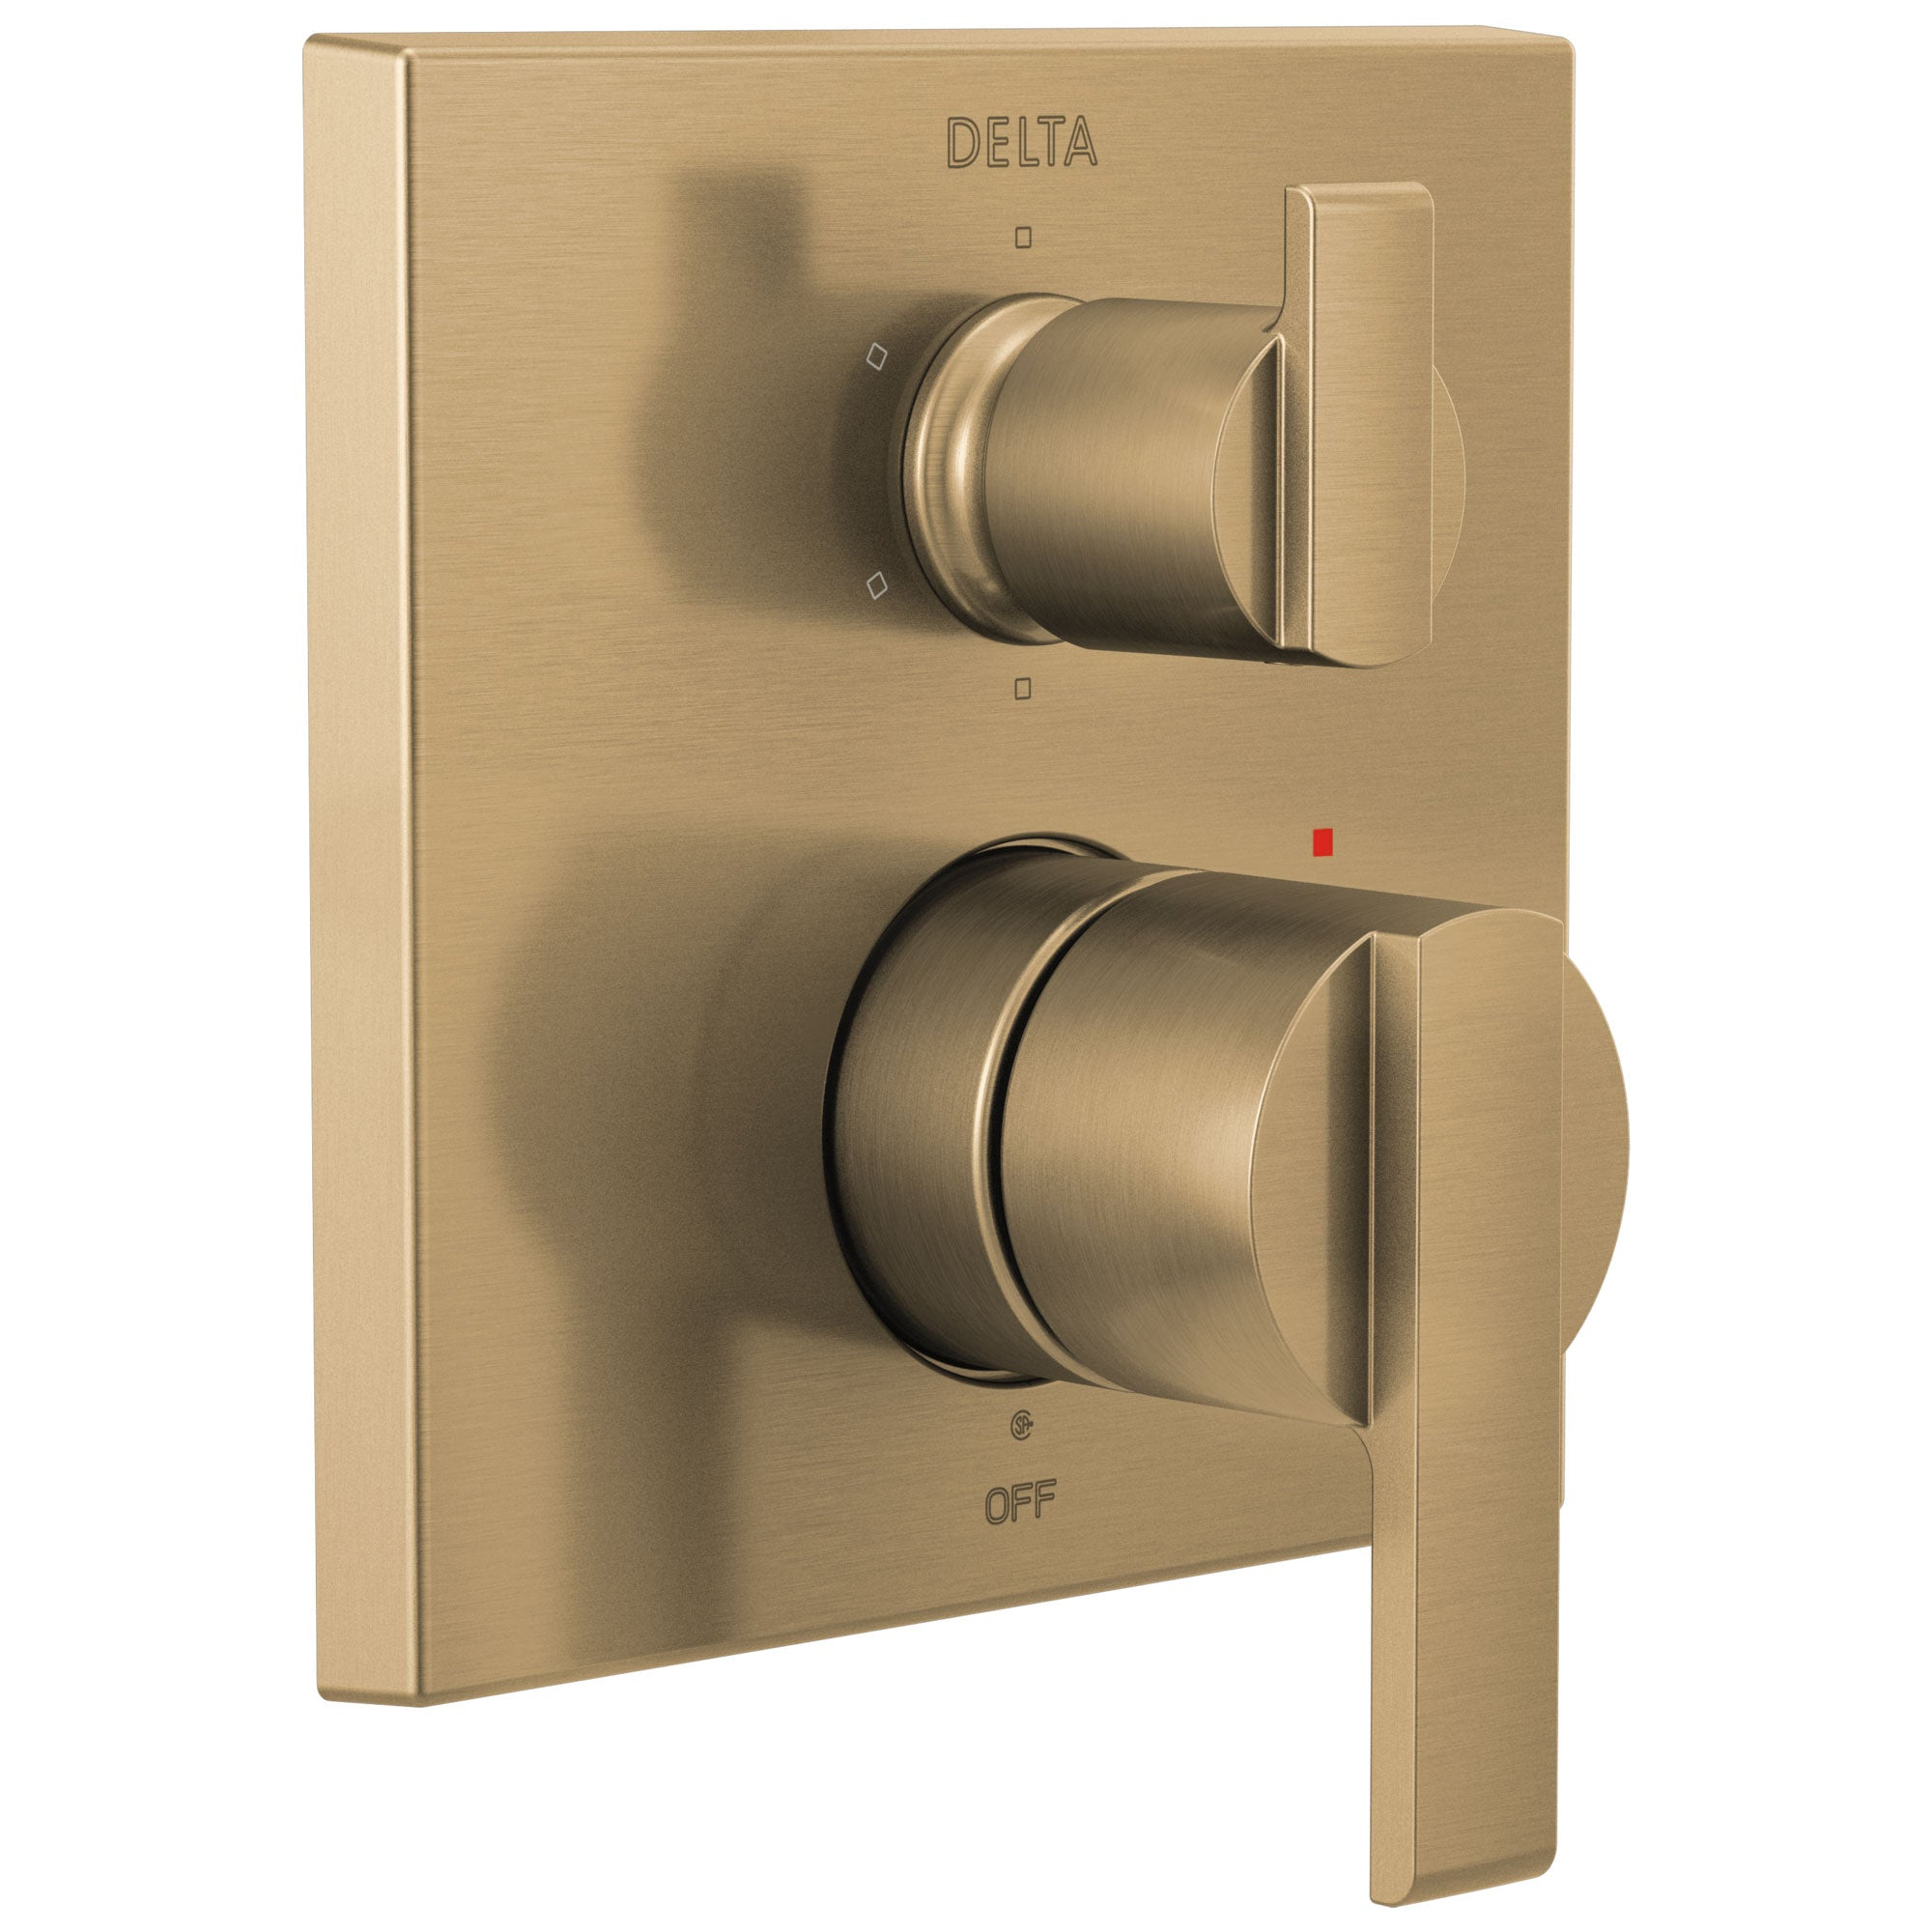 Delta Ara Champagne Bronze Finish Angular Modern Monitor 14 Series Shower Control Trim Kit with 6-Setting Integrated Diverter (Requires Valve) DT24967CZ